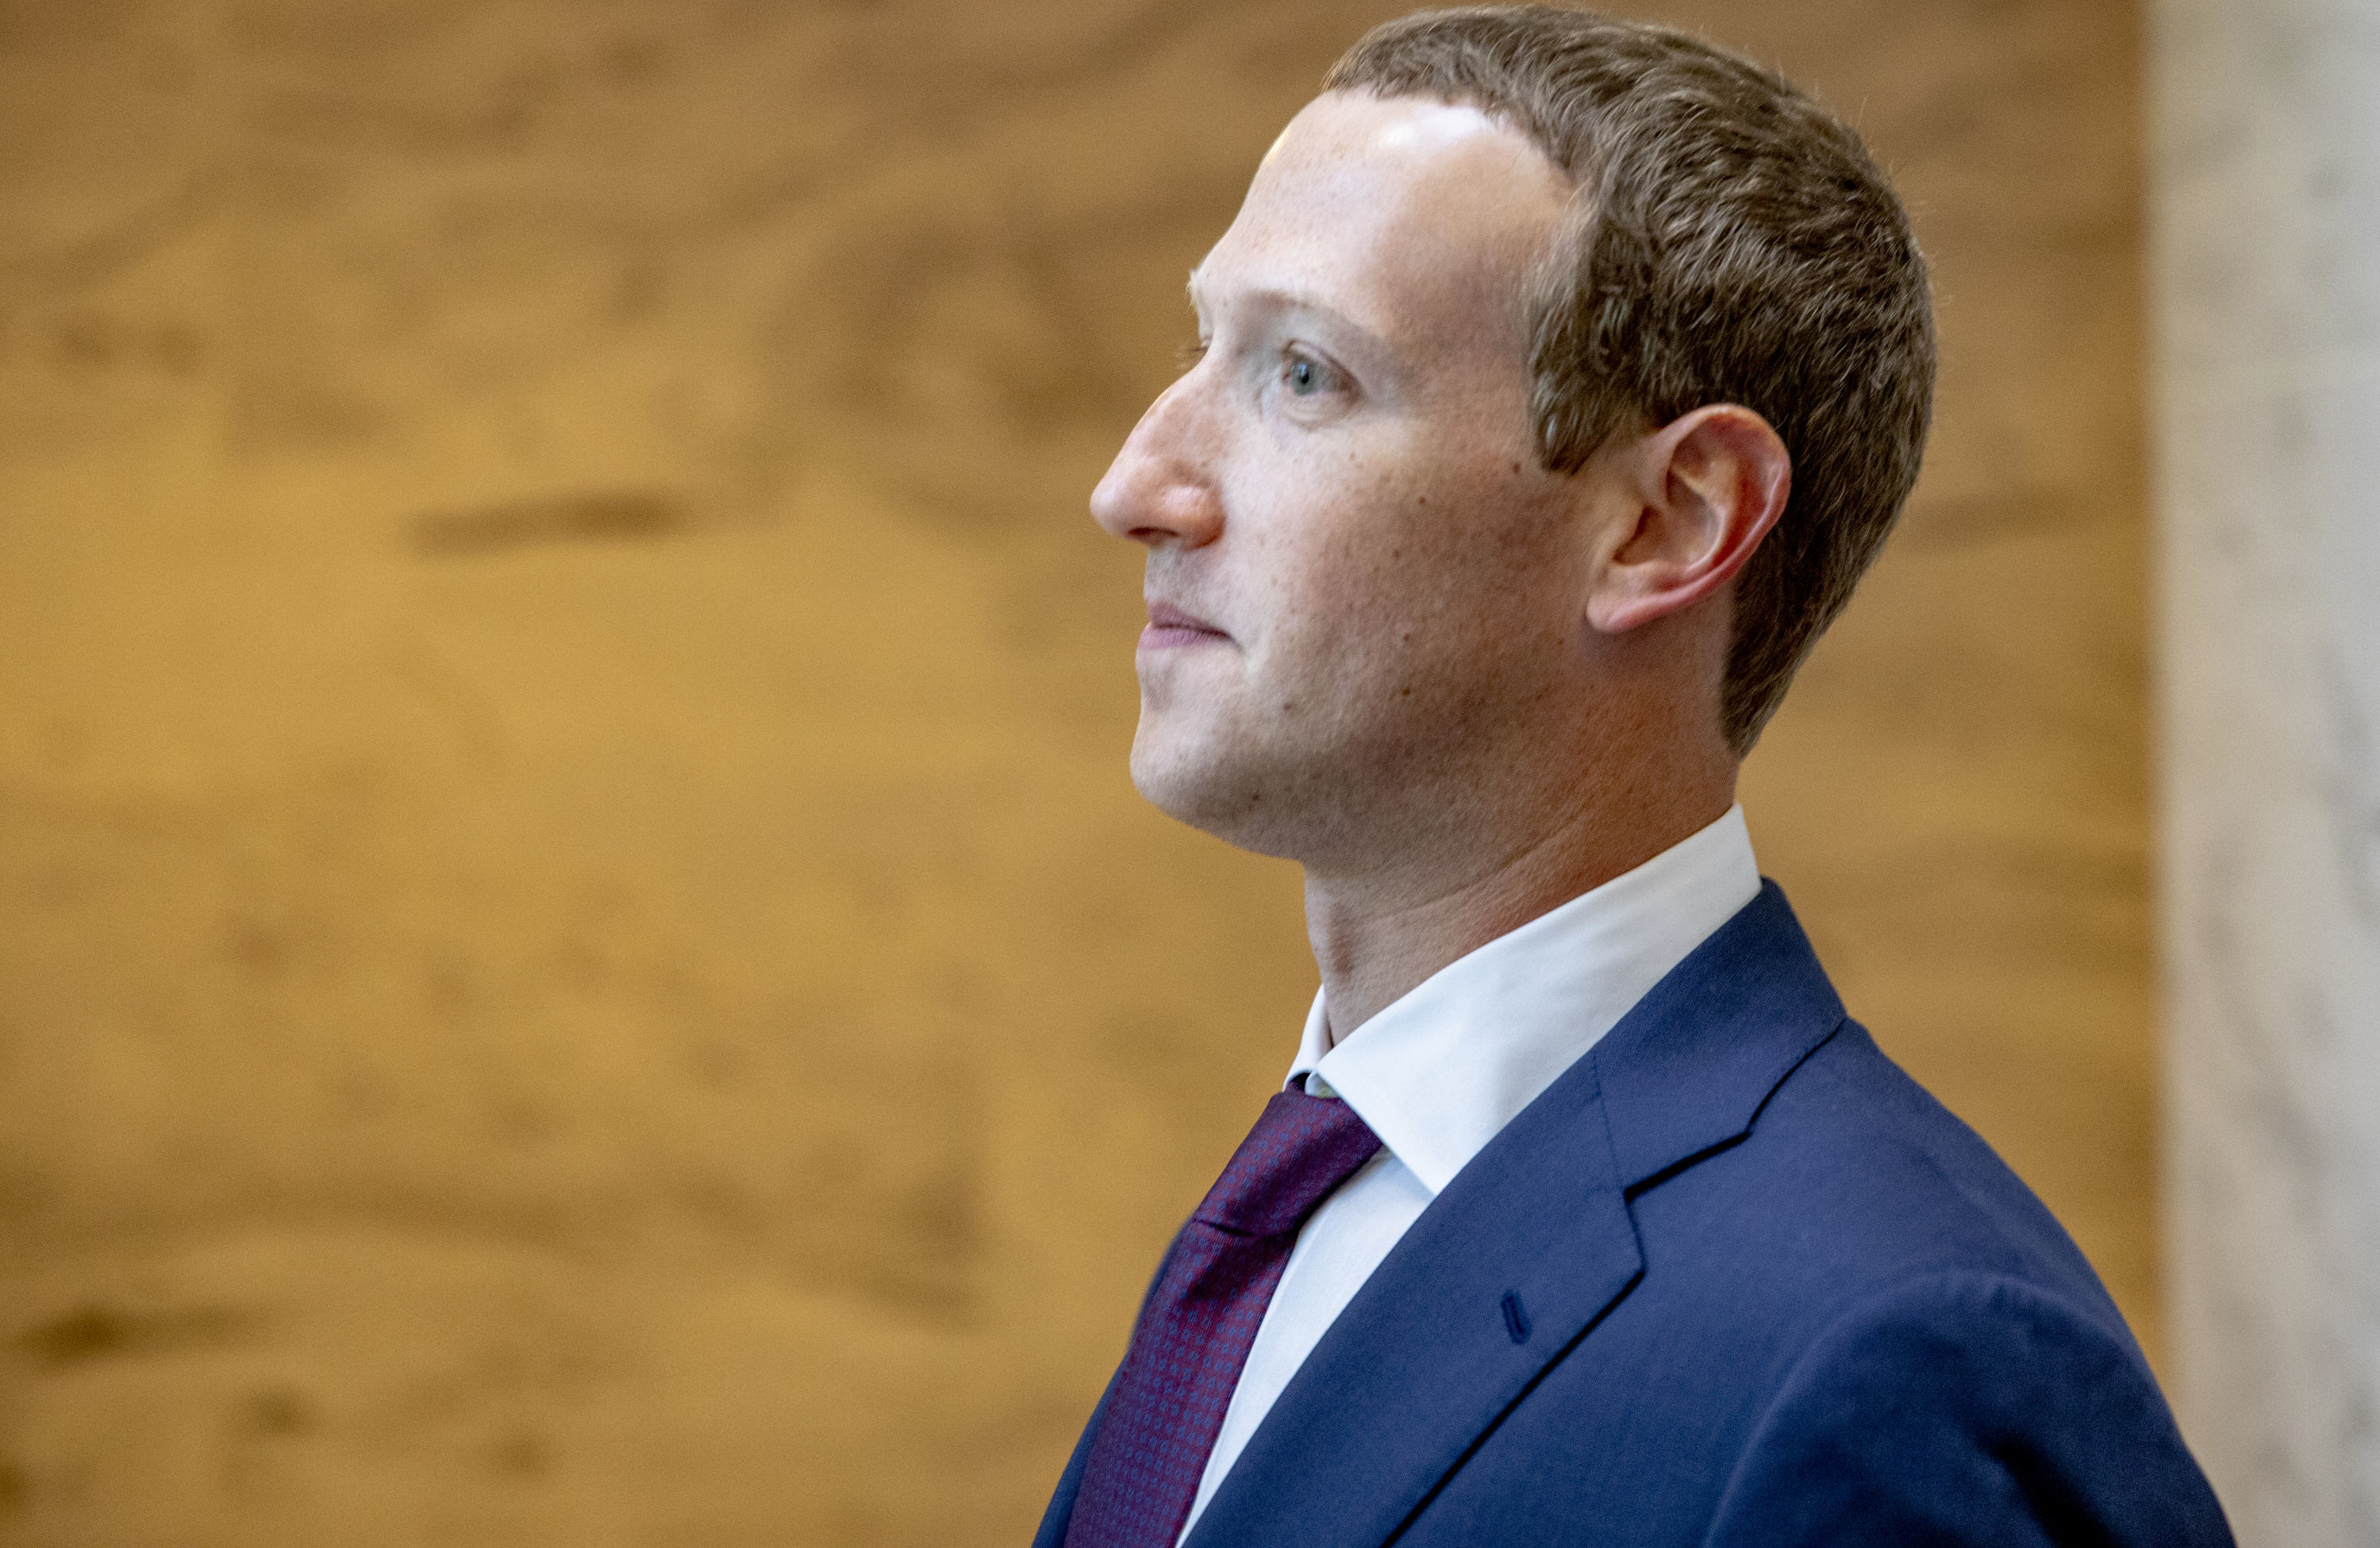 Facebook founder and CEO Mark Zuckerberg leaves a meeting with Senator John Cornyn (R-TX) in his office on Capitol Hill on September 19, 2019 in Washington, DC.